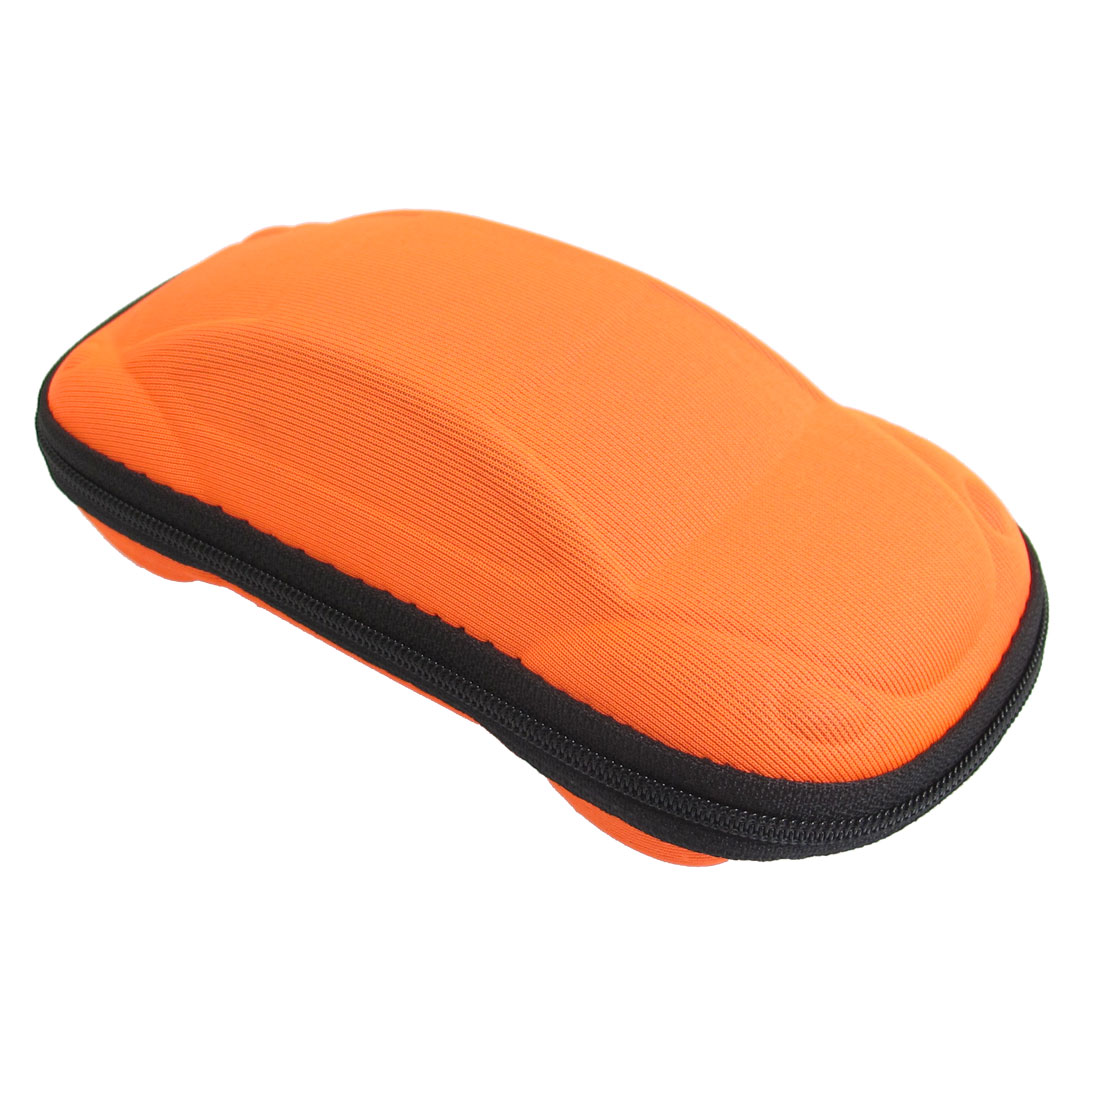 Orange Car Shaped Zippered Eyeglasses Sunglasses Case Box